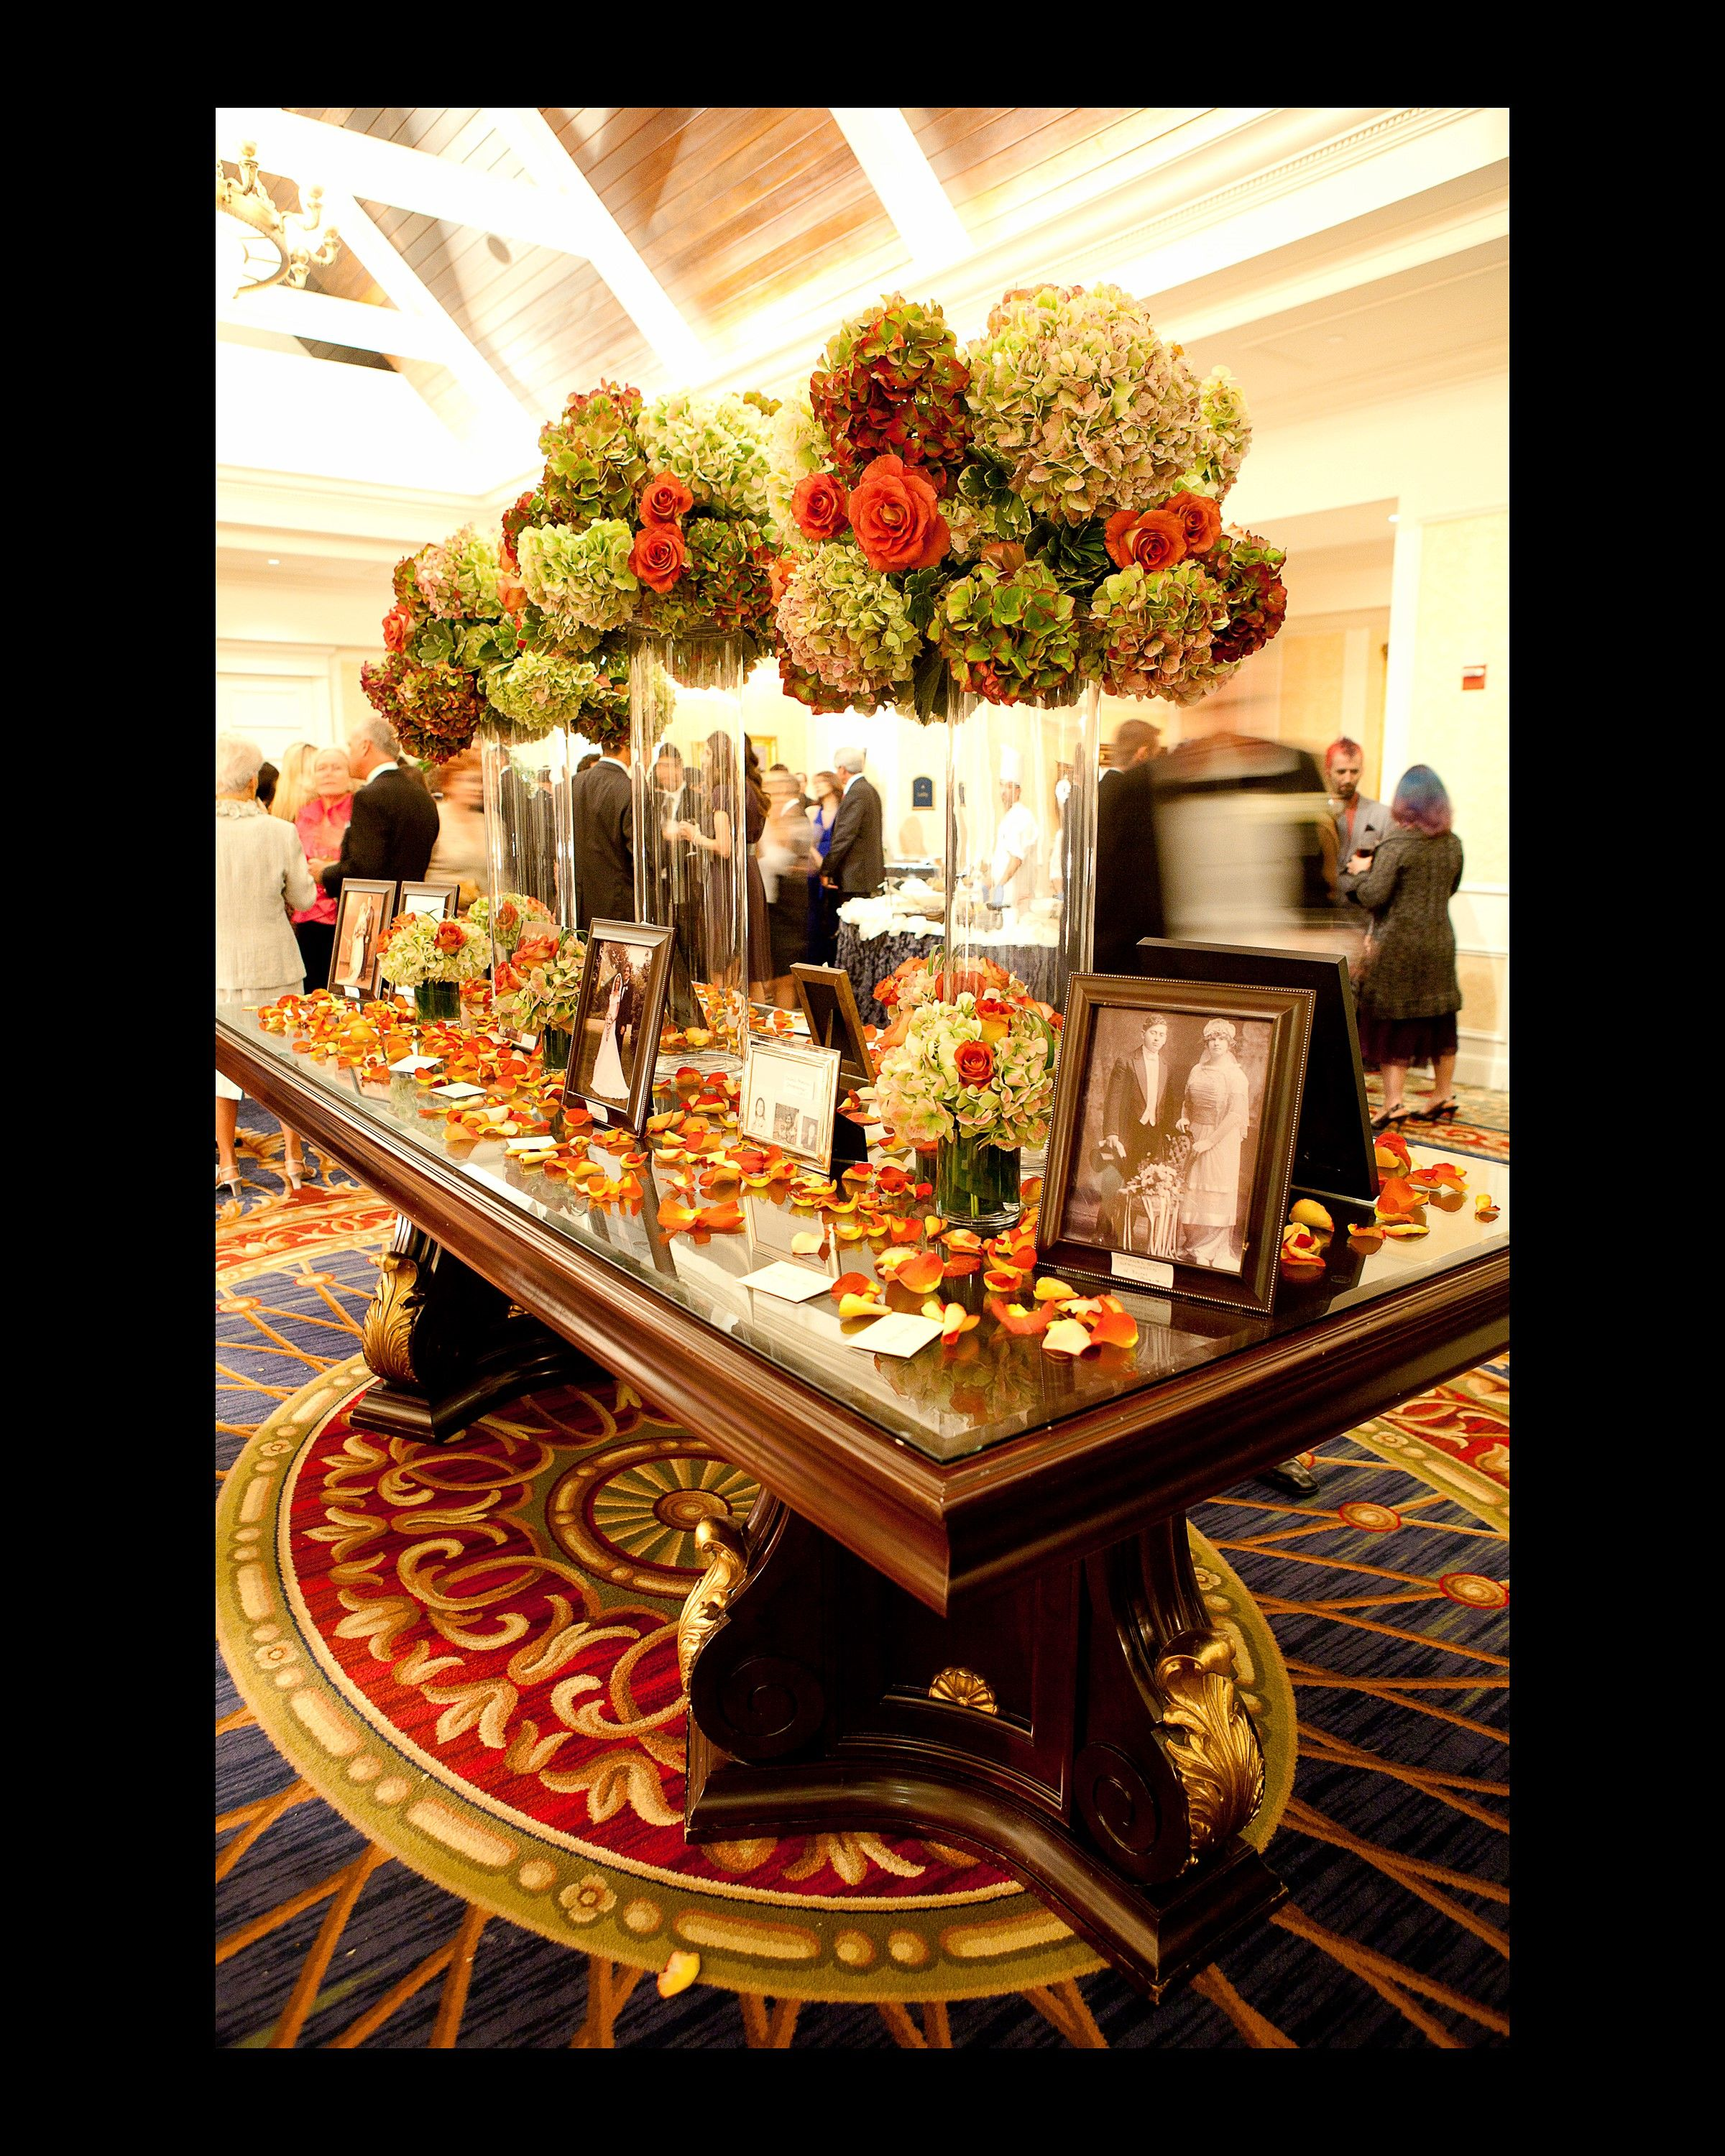 Rich Colors Play Well With The Interior Decor For This Event. Designed By  Floral Dimensions